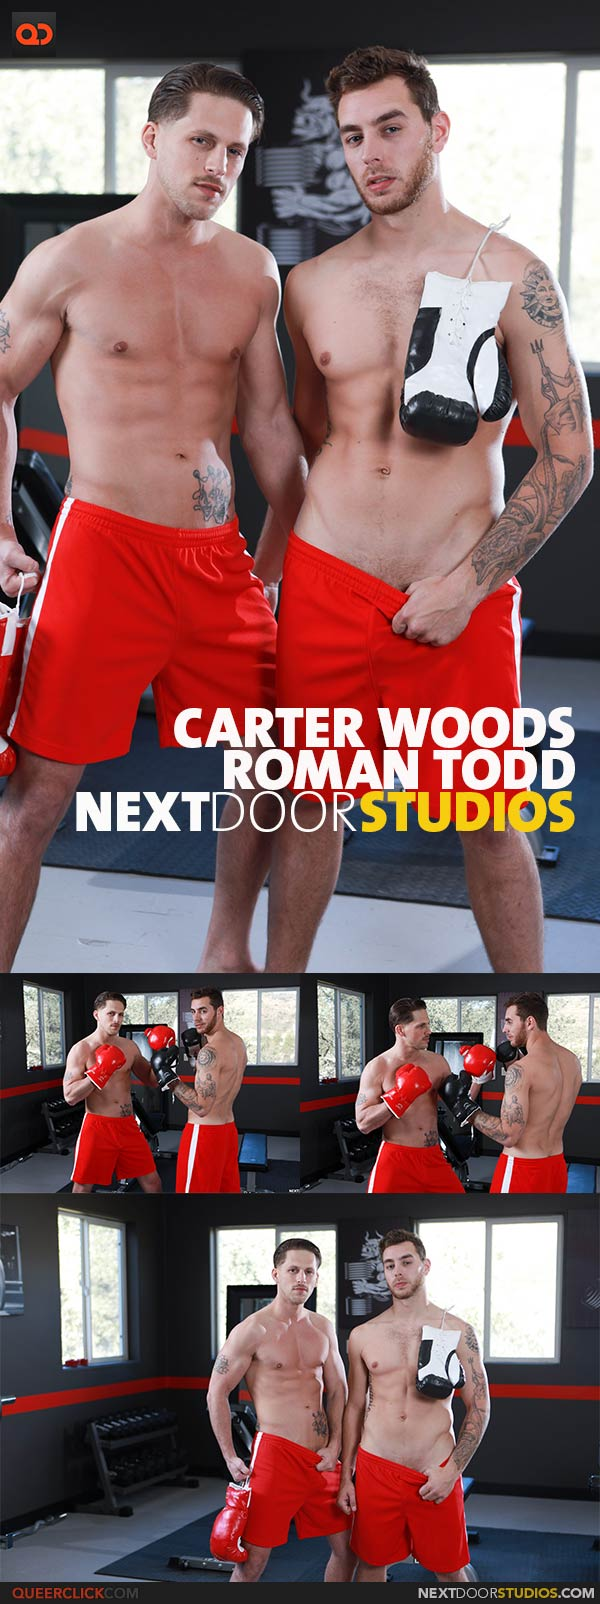 NextDoorStudios: Roman Todd and Carter Woods